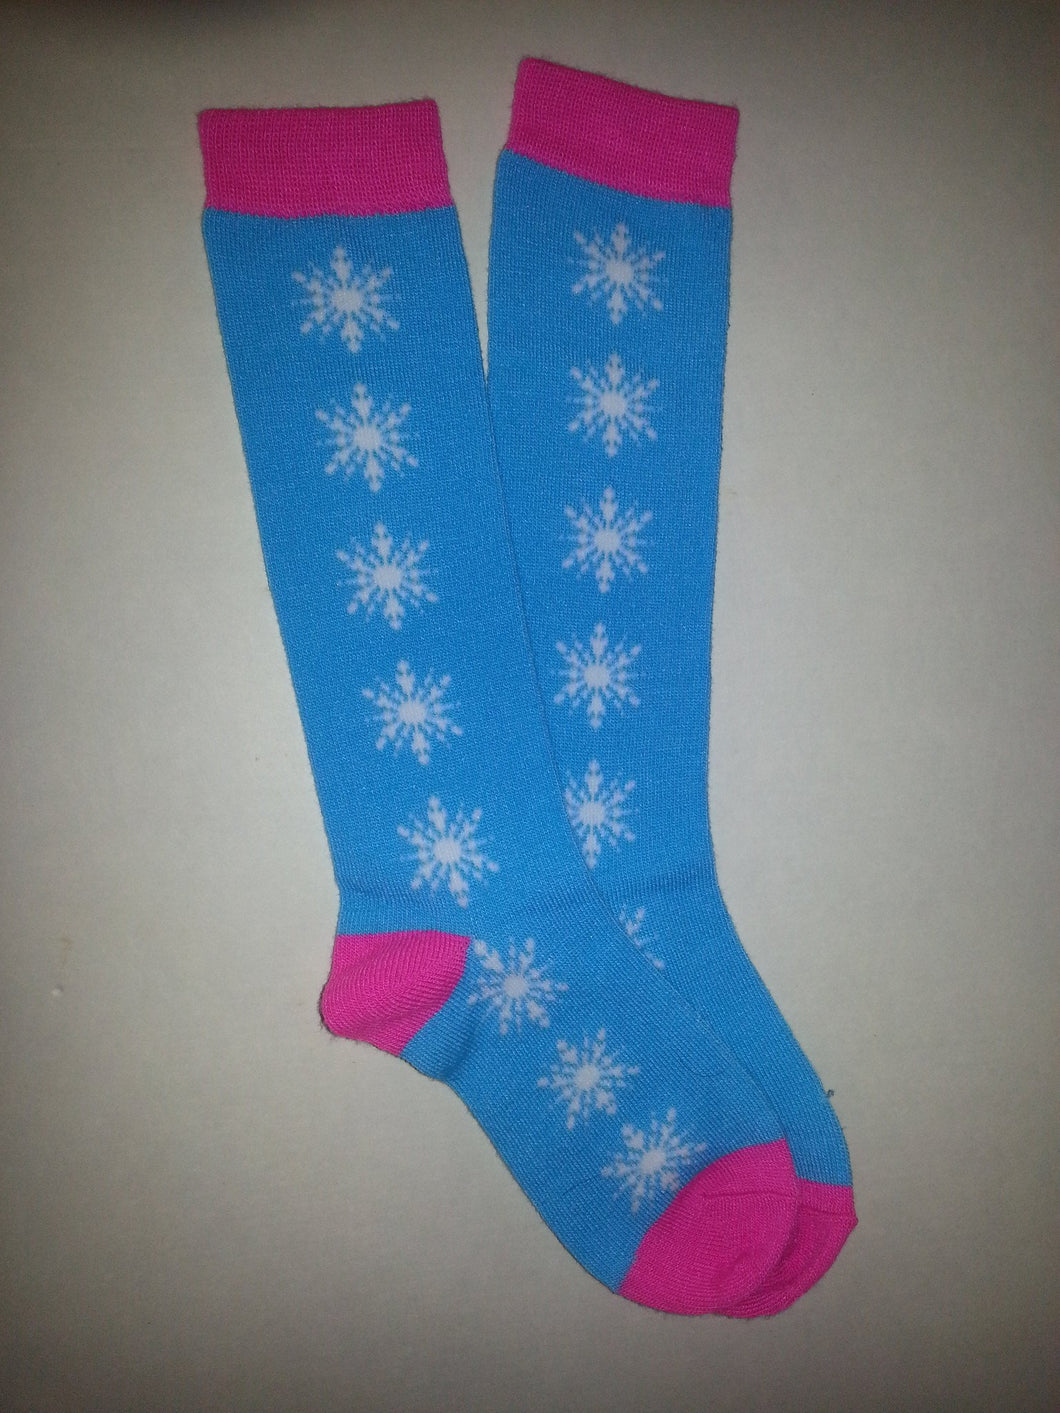 Snowflake Knee High Socks